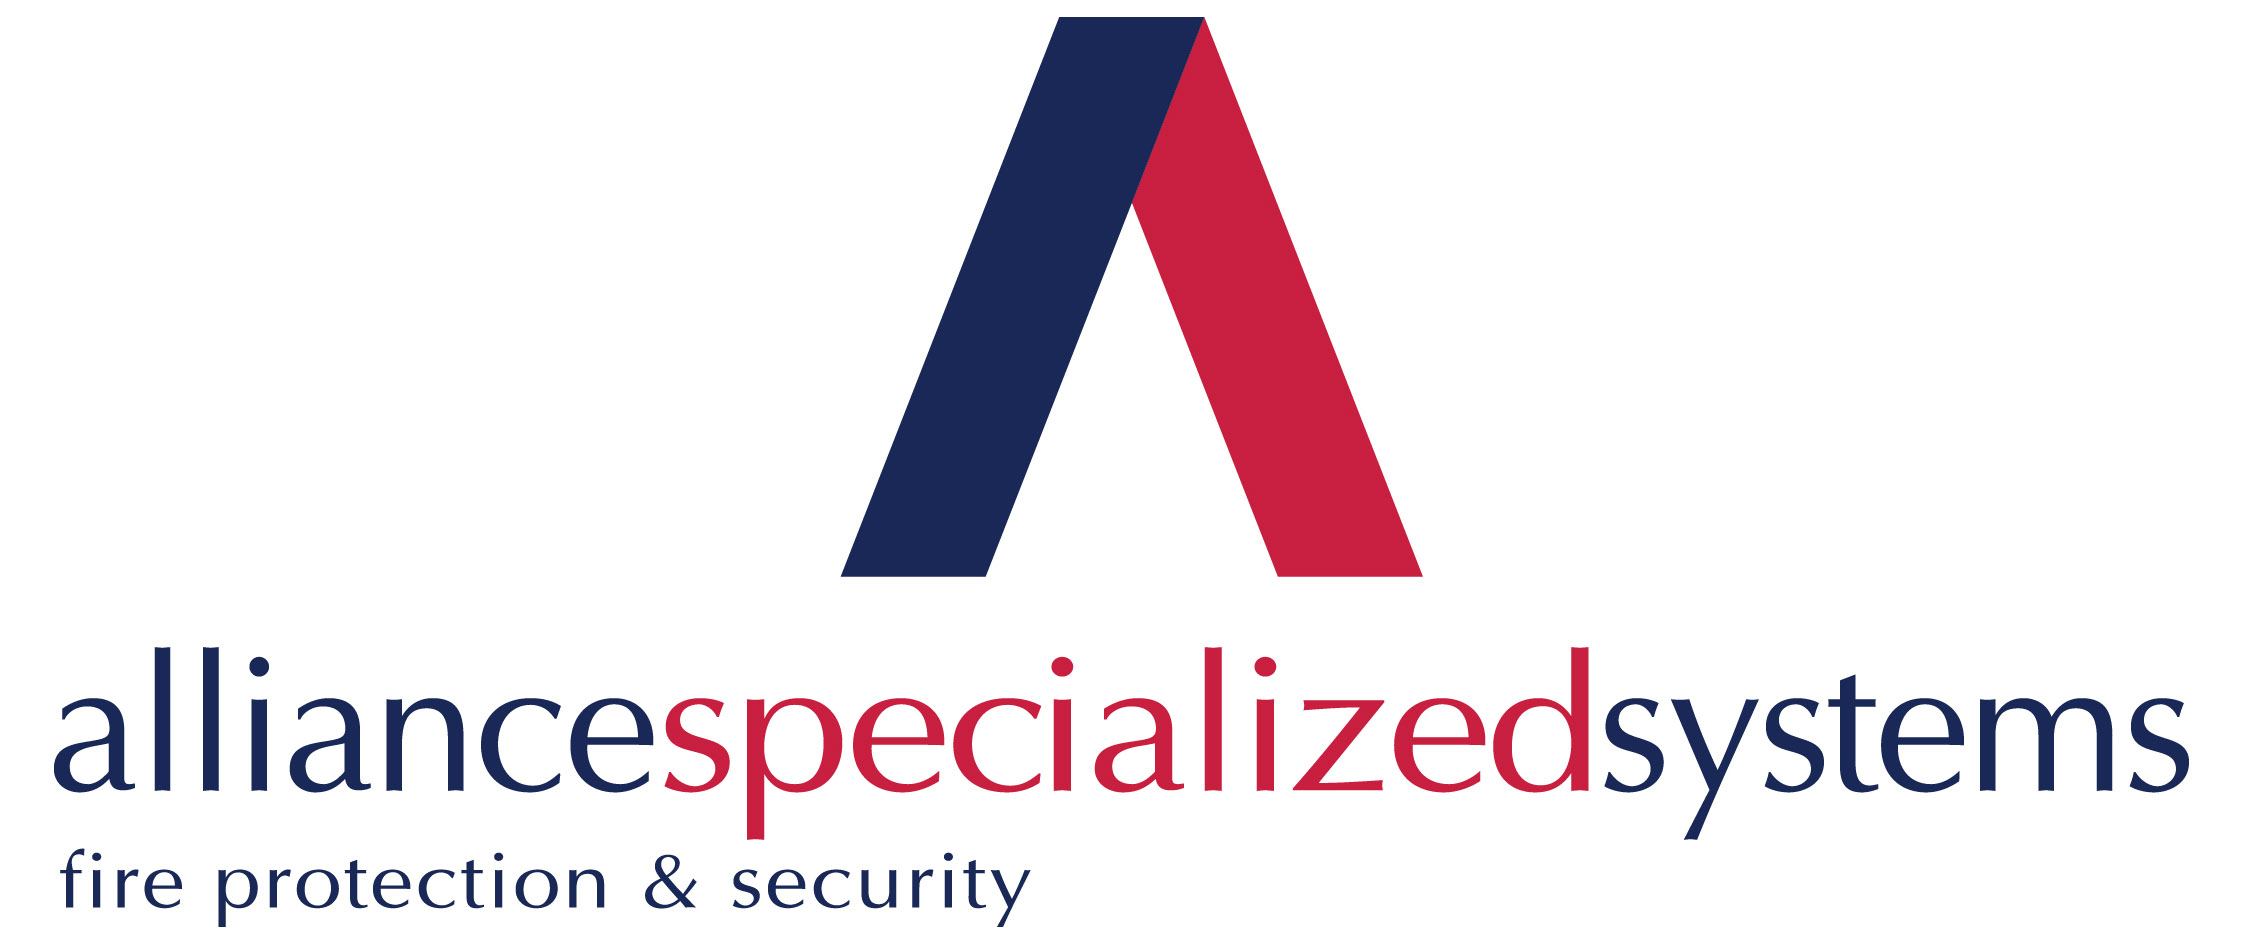 ALLIANCE SPECILIZED